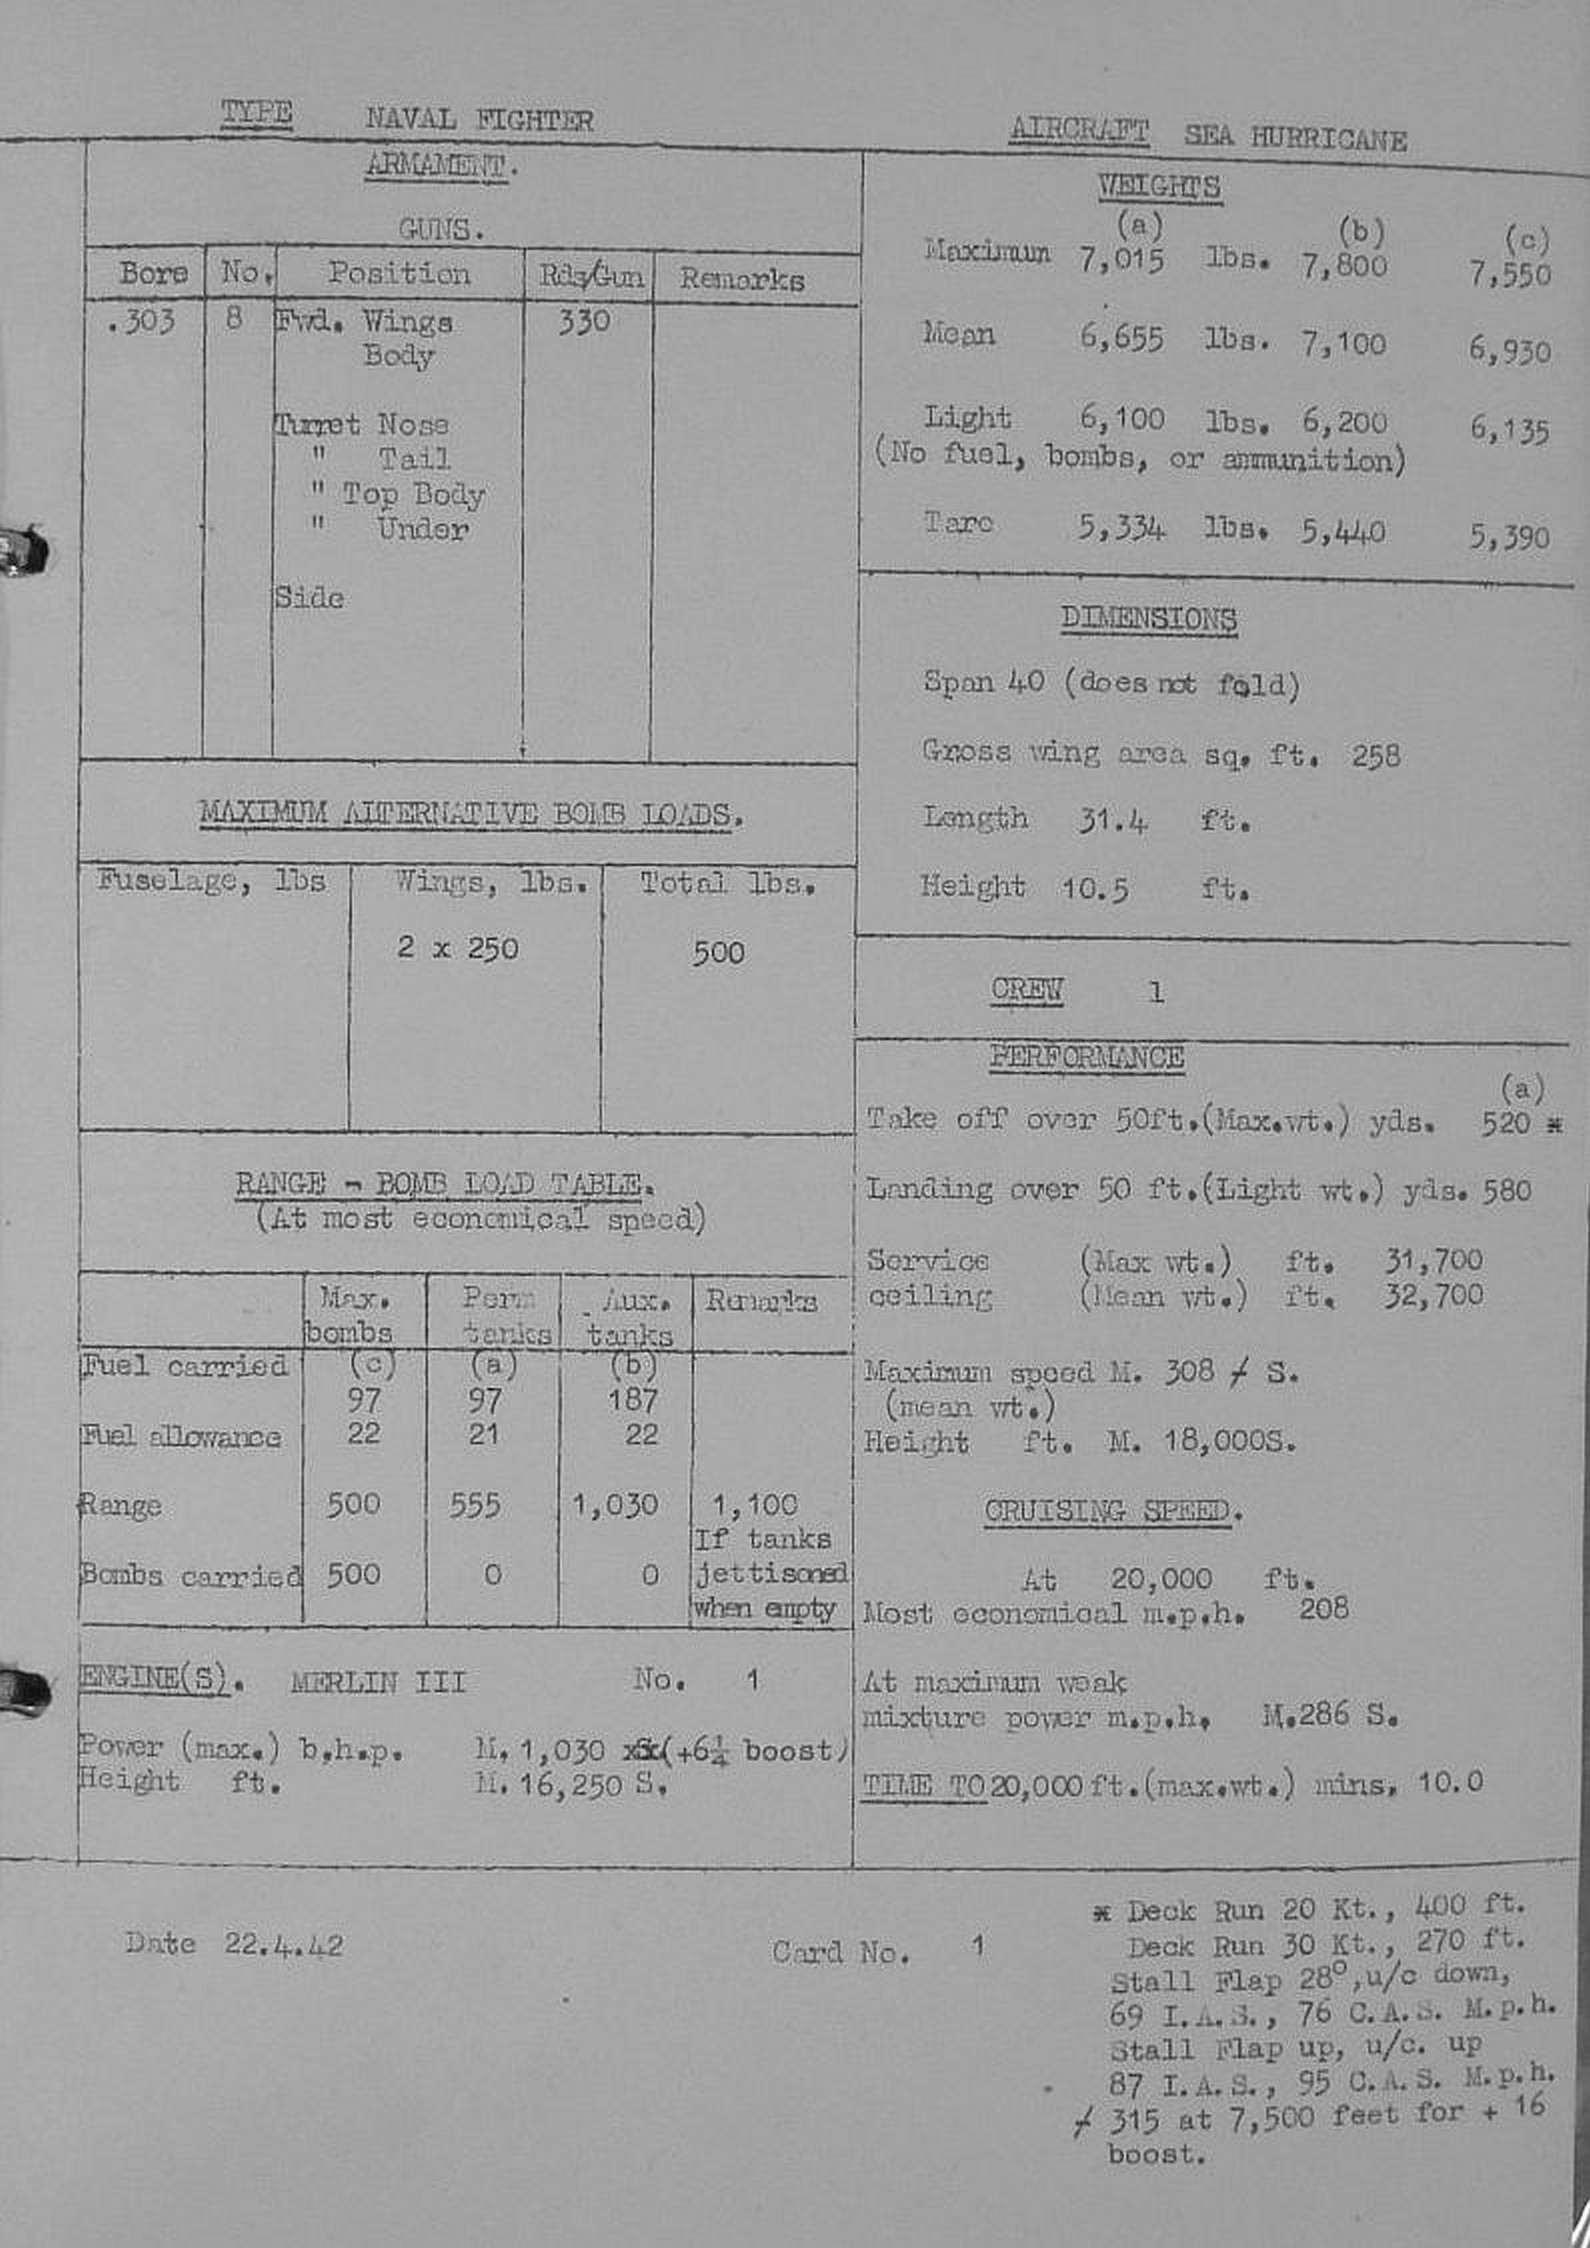 The FAA data card showing the performance of the Hawker Sea Hurricane 1B (Note the performance with 16lb boost at the bottom right of the card).